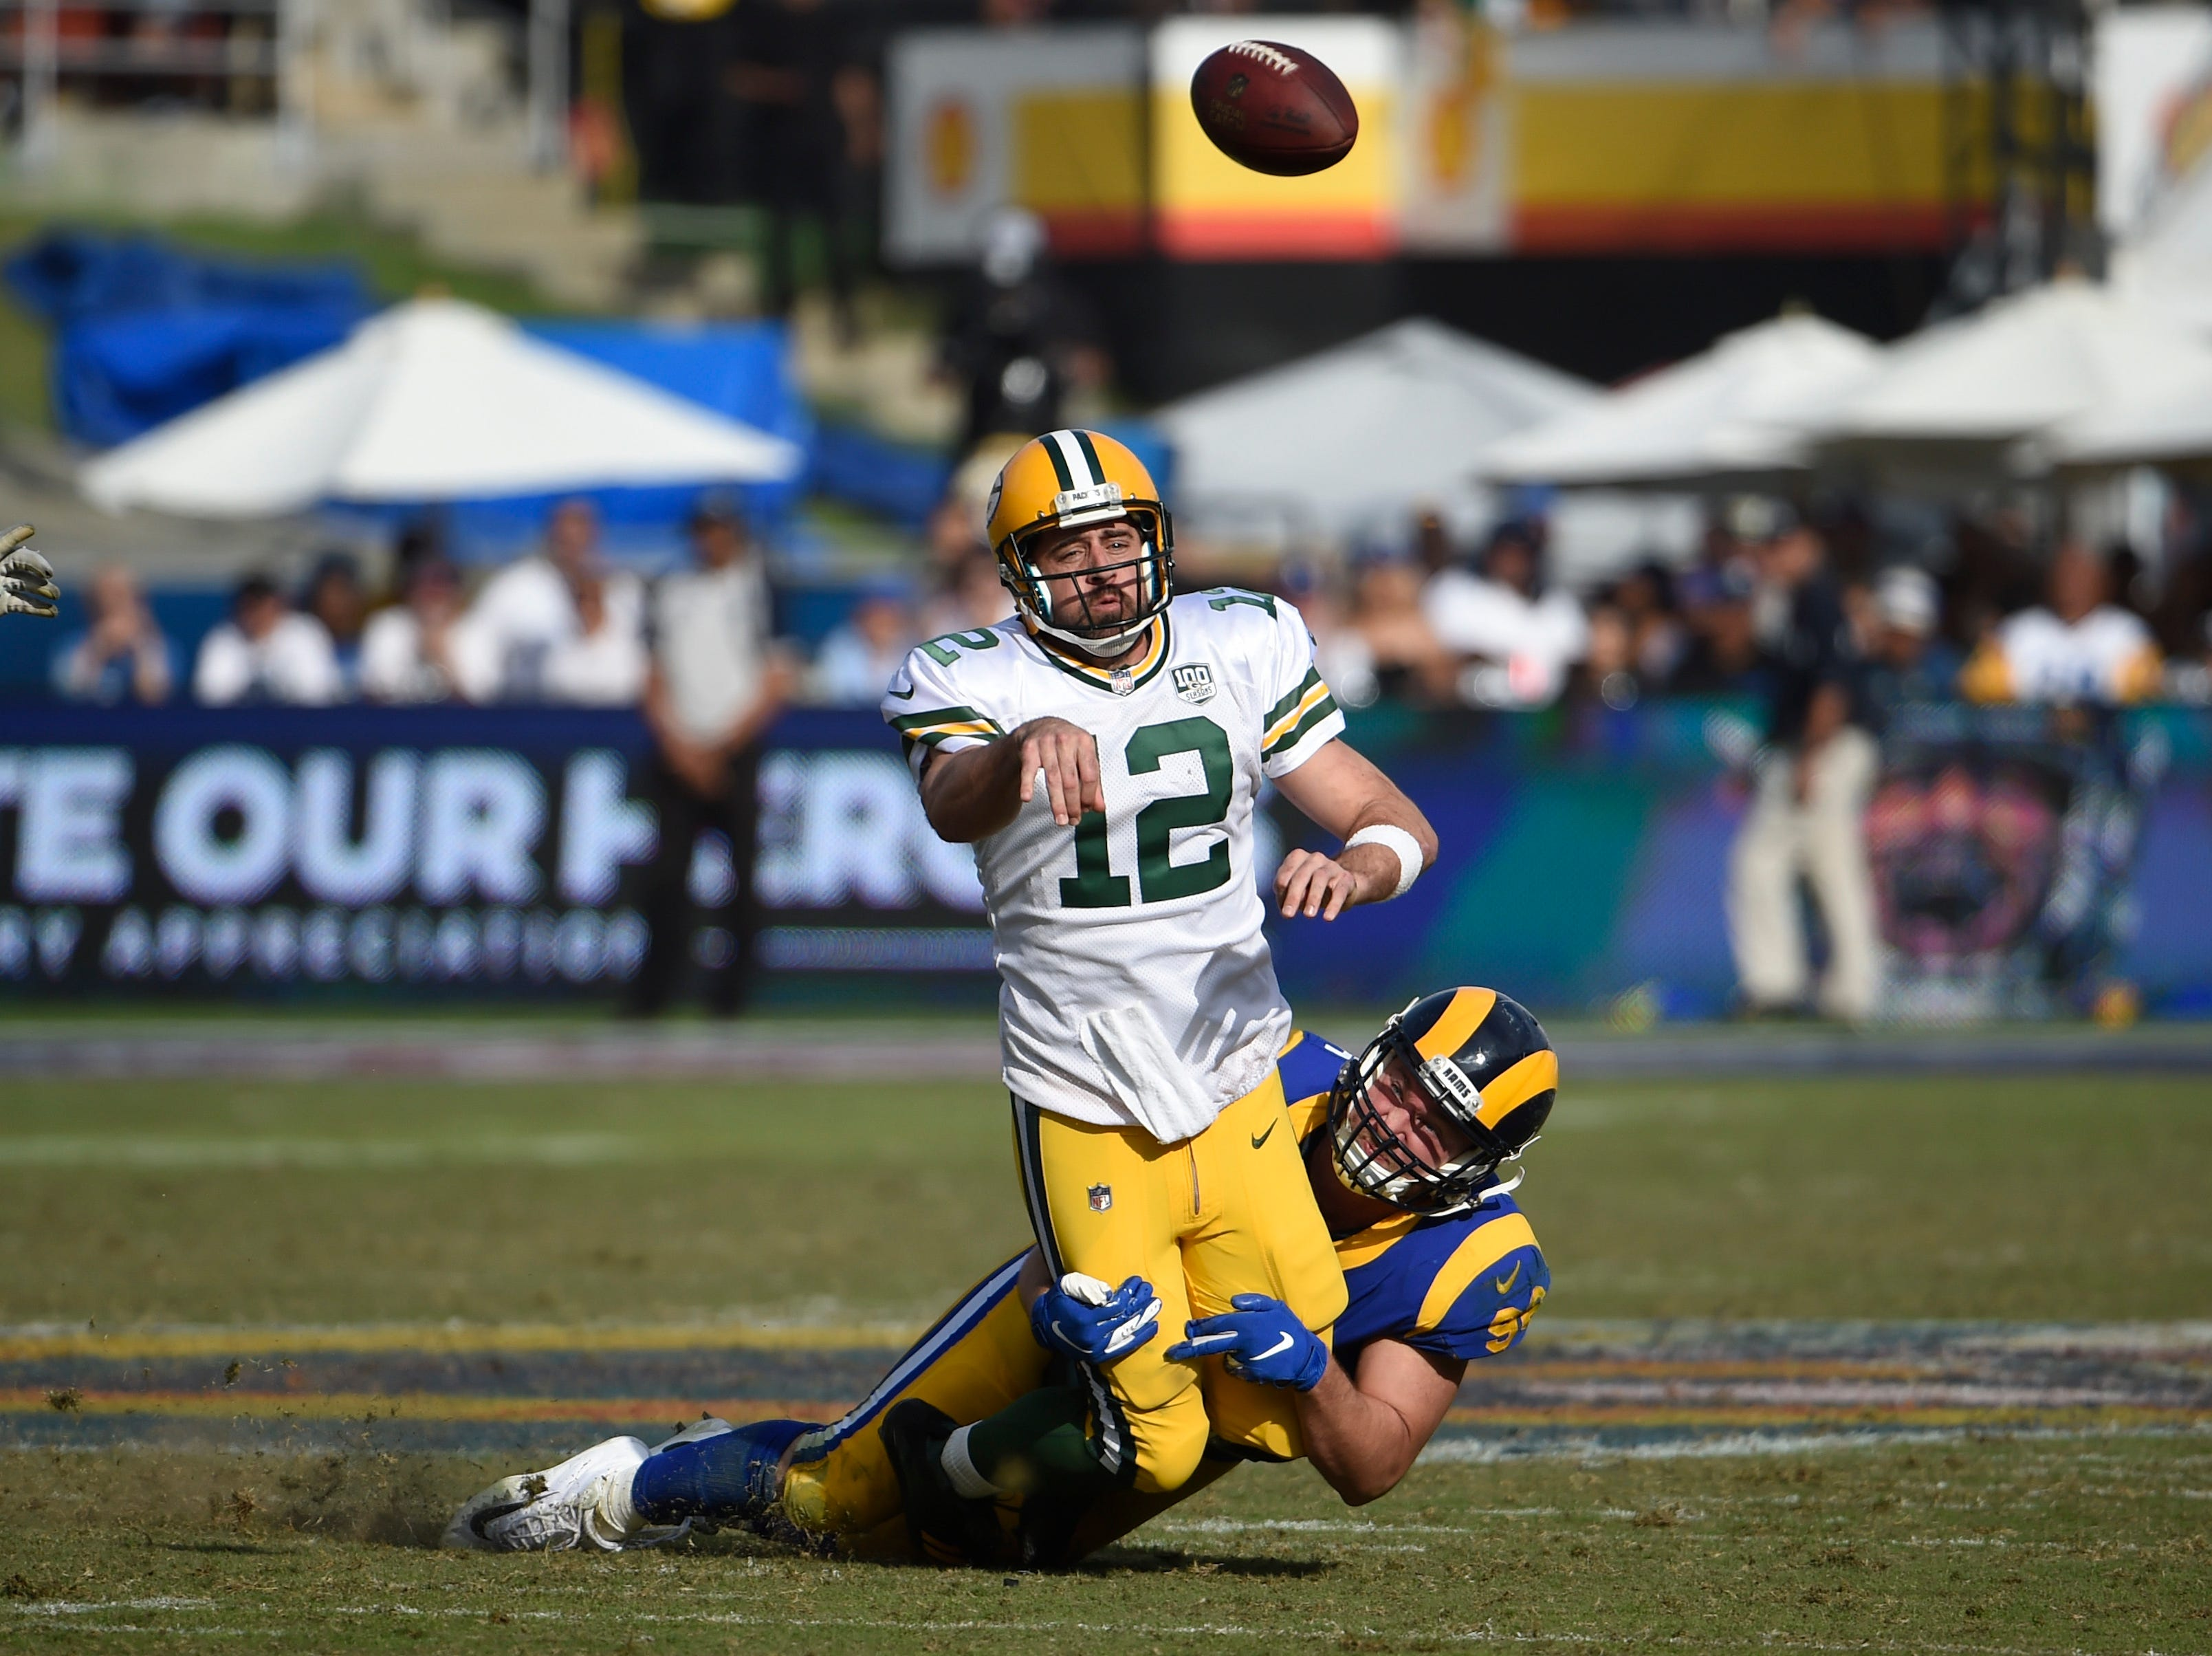 Green Bay Packers quarterback Aaron Rodgers is hauled down by Los Angeles Rams defensive tackle Ethan Westbrooks during the second half of an NFL football game, Sunday, Oct. 28, 2018, in Los Angeles. (AP Photo/Denis Poroy)